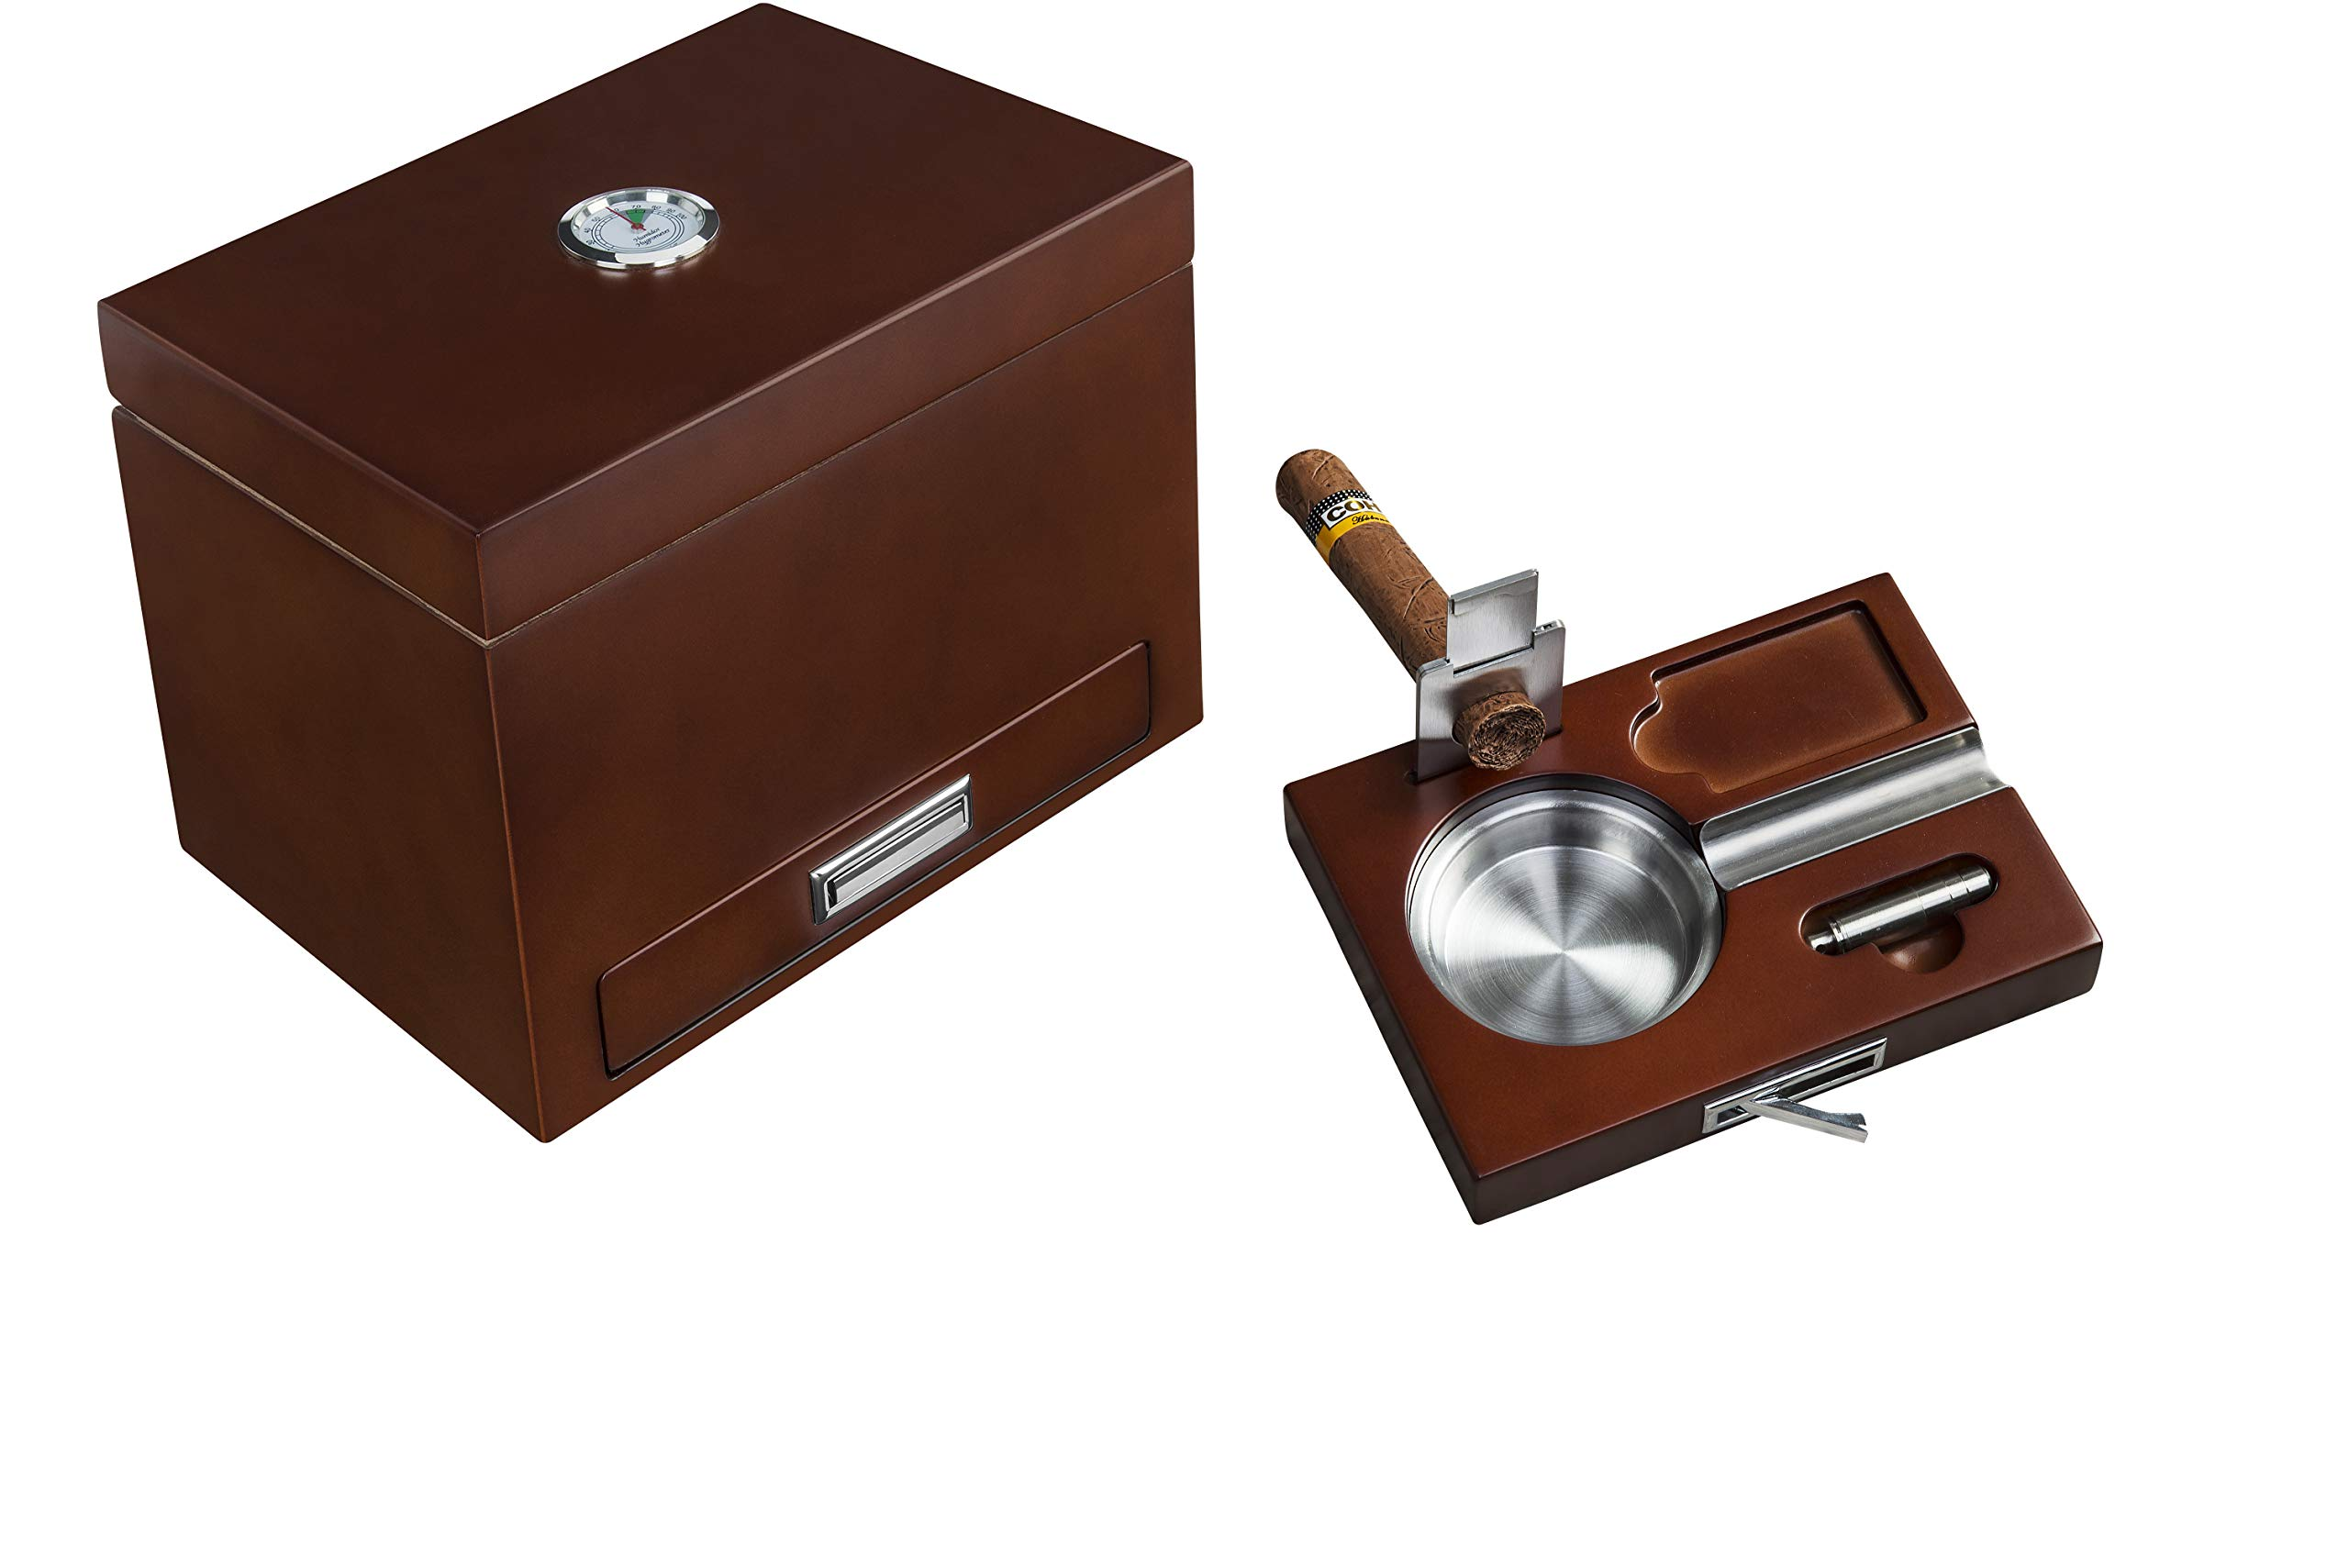 Cigar Humidor with Drawer Ashtray Set, Cutter and Puncher. Includes humidifier & Hygrometer. Holds 20-25 Cigars - by Flint and Ember (Brown)